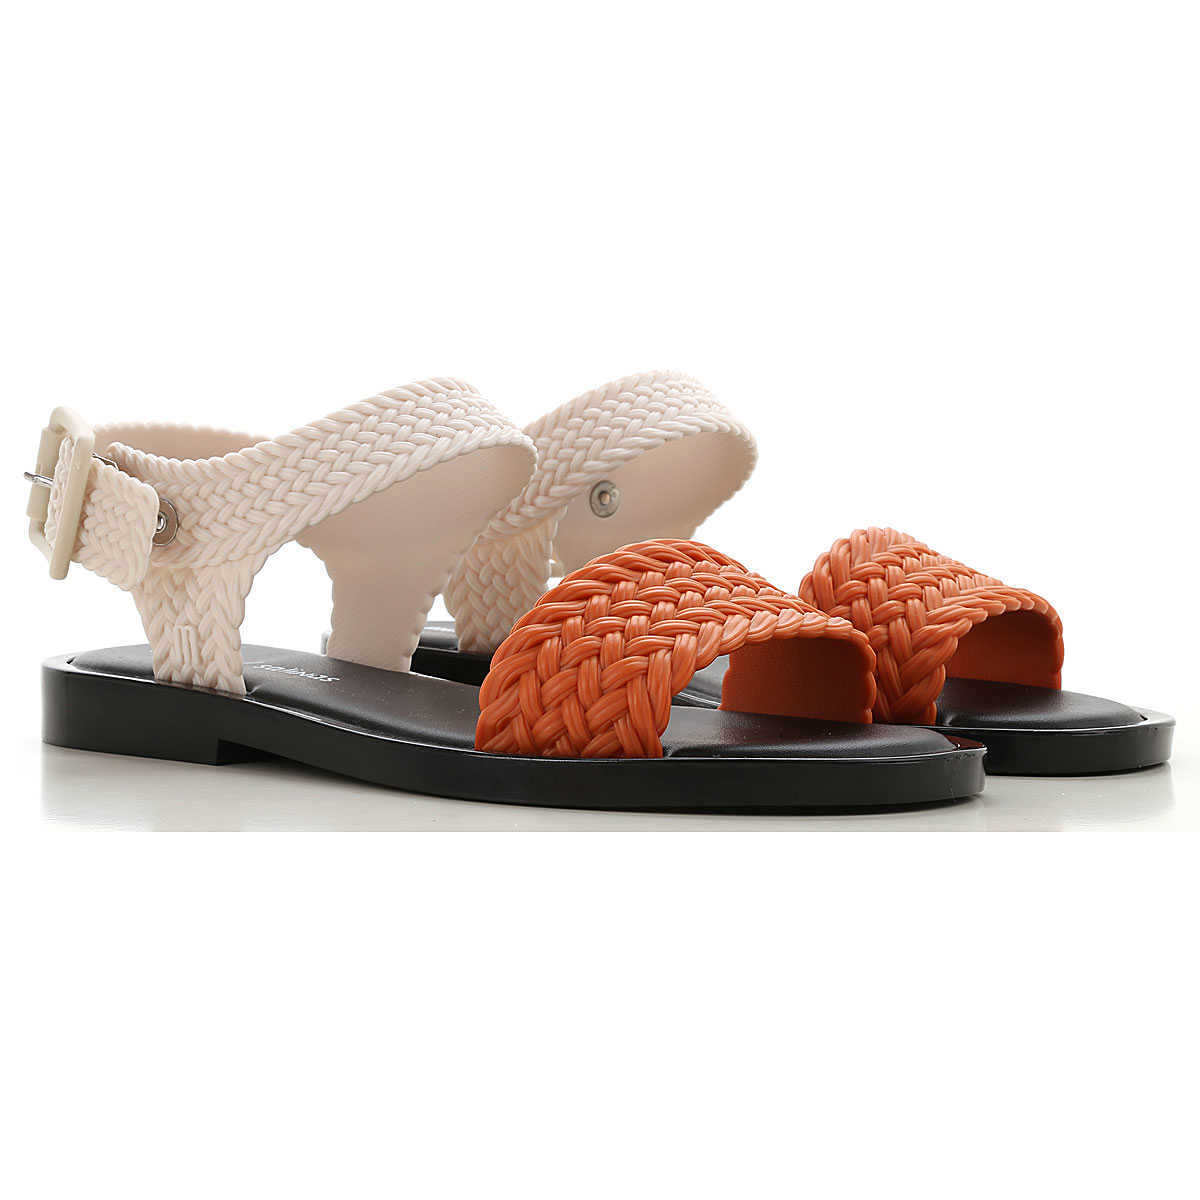 Melissa Sandals for Women On Sale USA 6 - EUR 37 USA 7 - EUR 38 USA 8 - EUR 39 USA 9 - EUR 40 USA 10 - EUR 41/4 Melissa + Salinas UK - GOOFASH